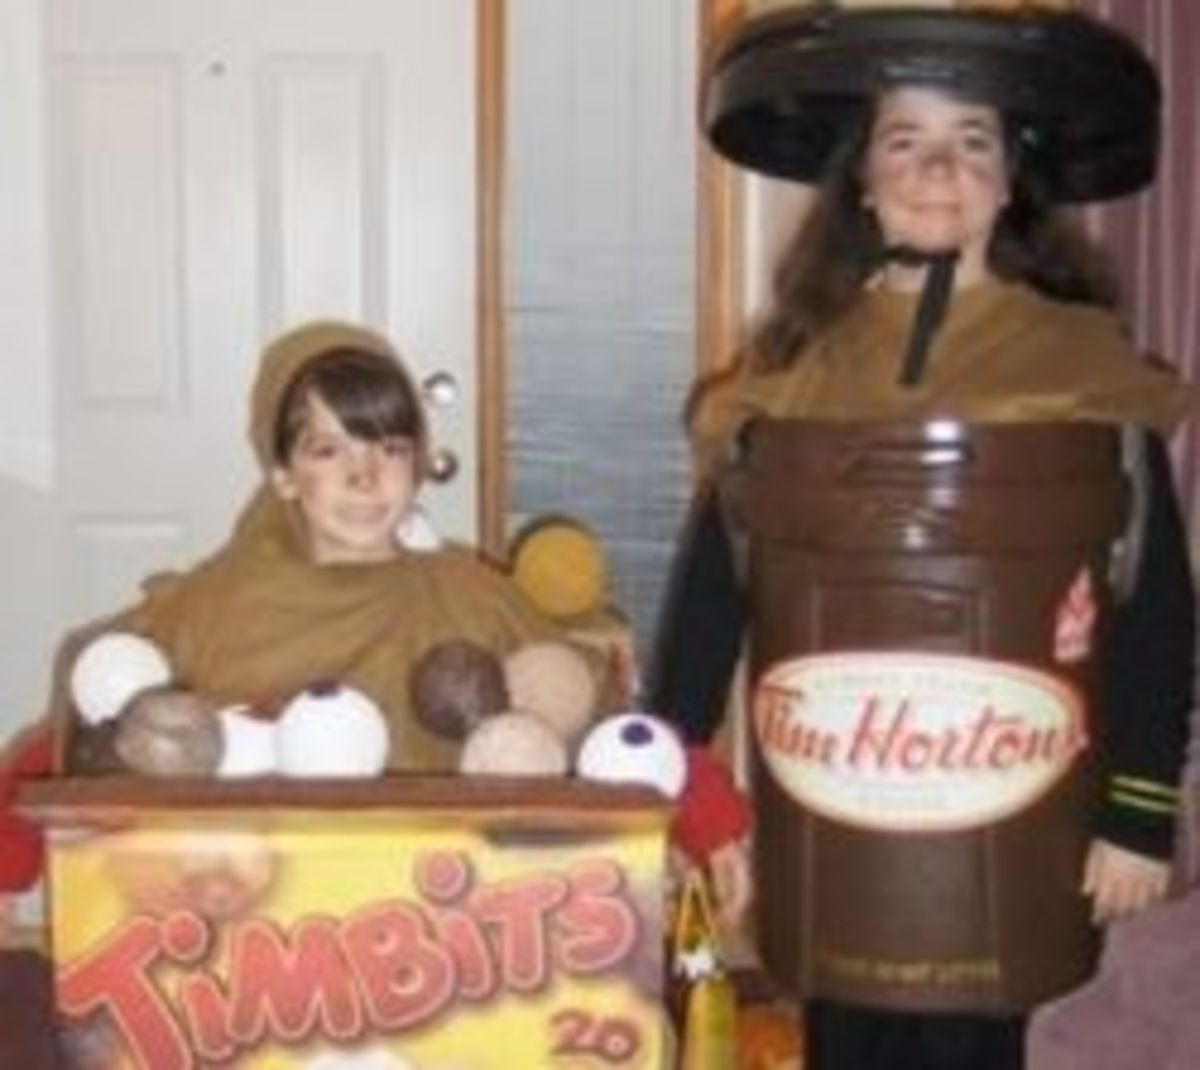 Tim Hortons Coffee Cup & Timbits Costume